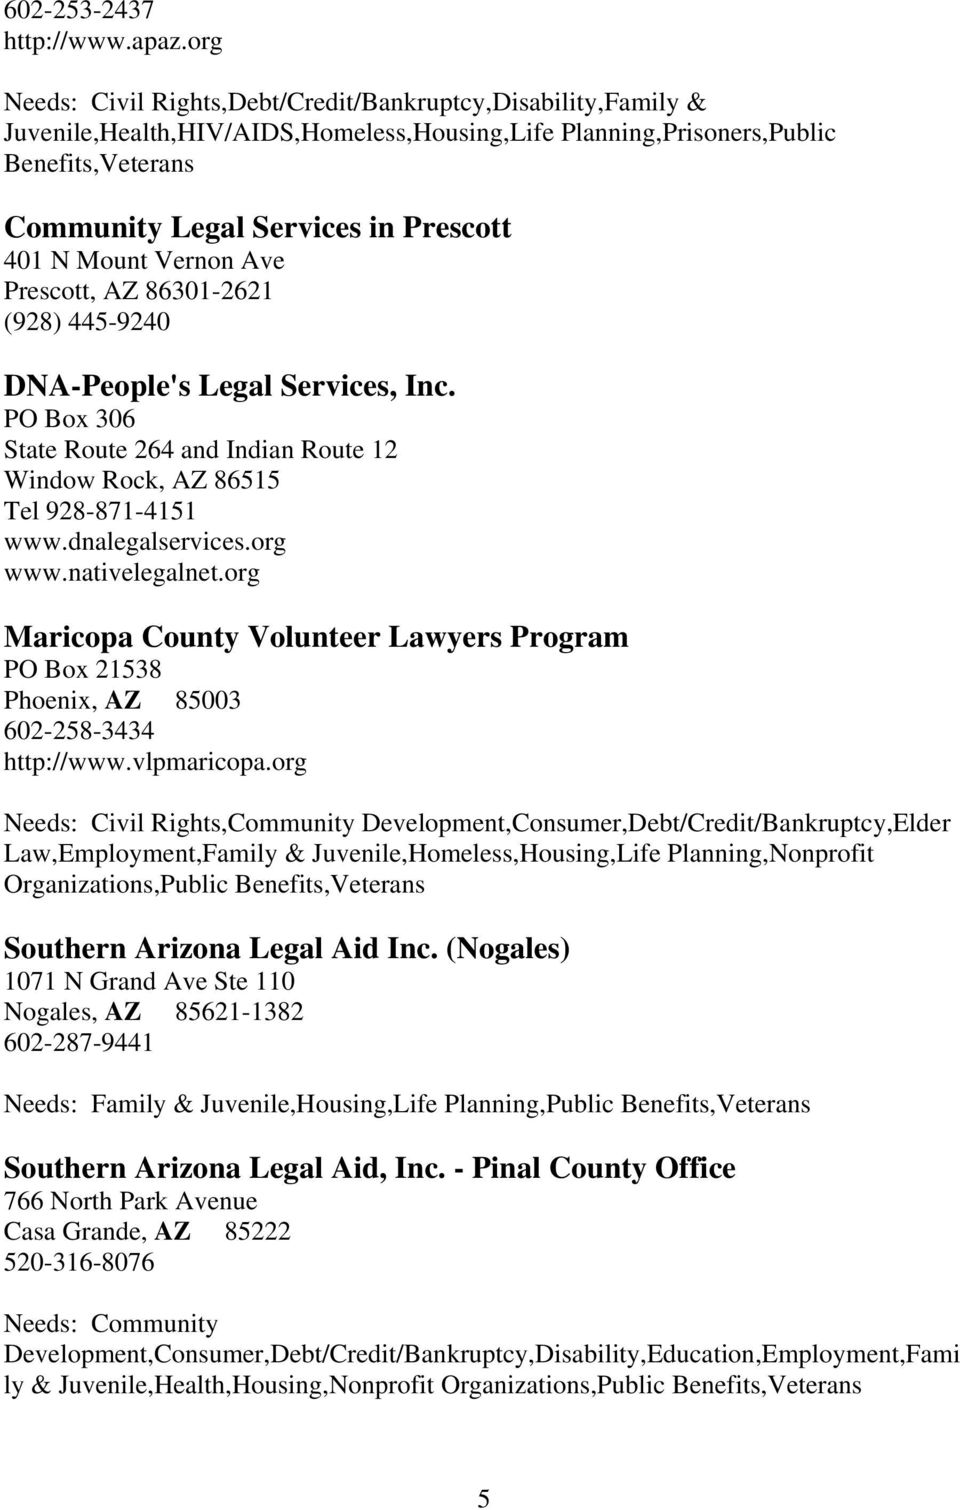 N Mount Vernon Ave Prescott, AZ 86301-2621 (928) 445-9240 DNA-People's Legal Services, Inc. PO Box 306 State Route 264 and Indian Route 12 Window Rock, AZ 86515 Tel 928-871-4151 www.dnalegalservices.